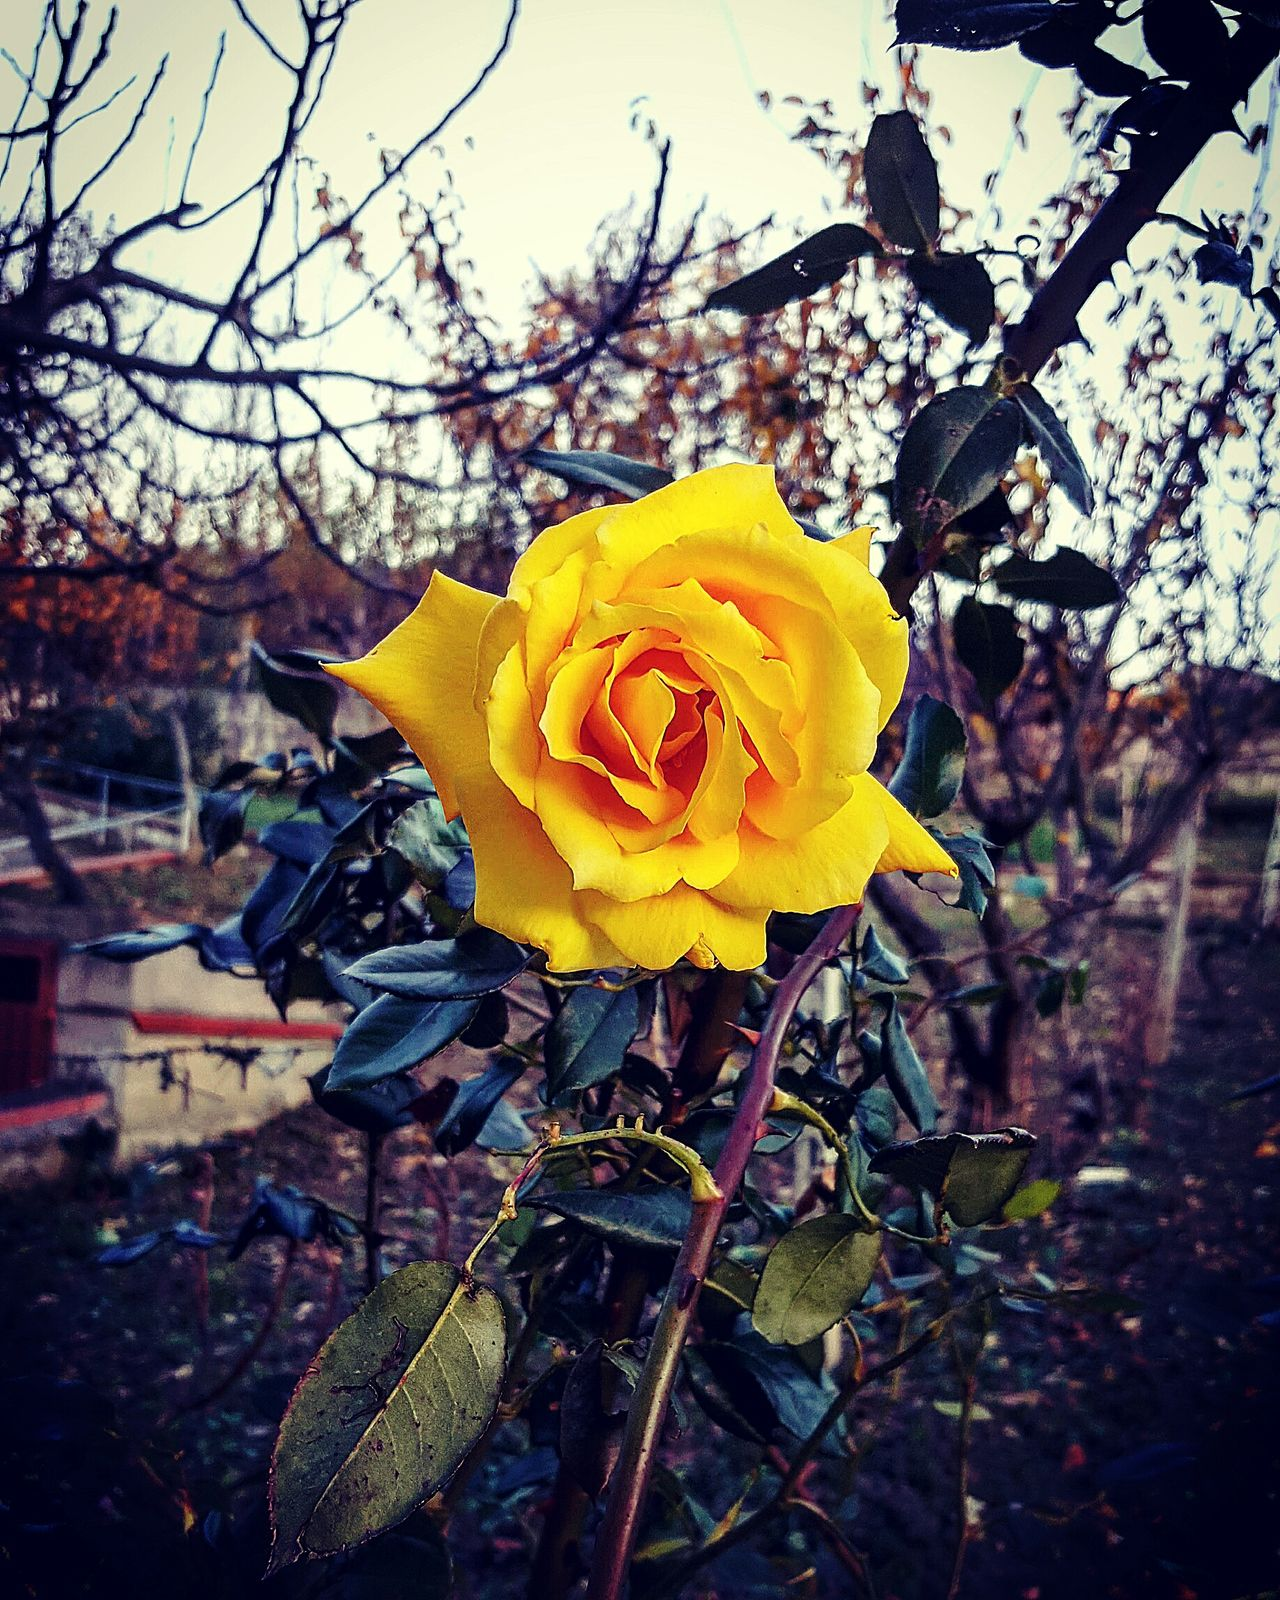 Nature Yellow Flower Rose🌹 Beauty In Nature Beautiful Naturelovers Stunning Outdoors Colors Flowers Lifeisbeautiful Love Thisismyworld Myview Stunning View Enjoy